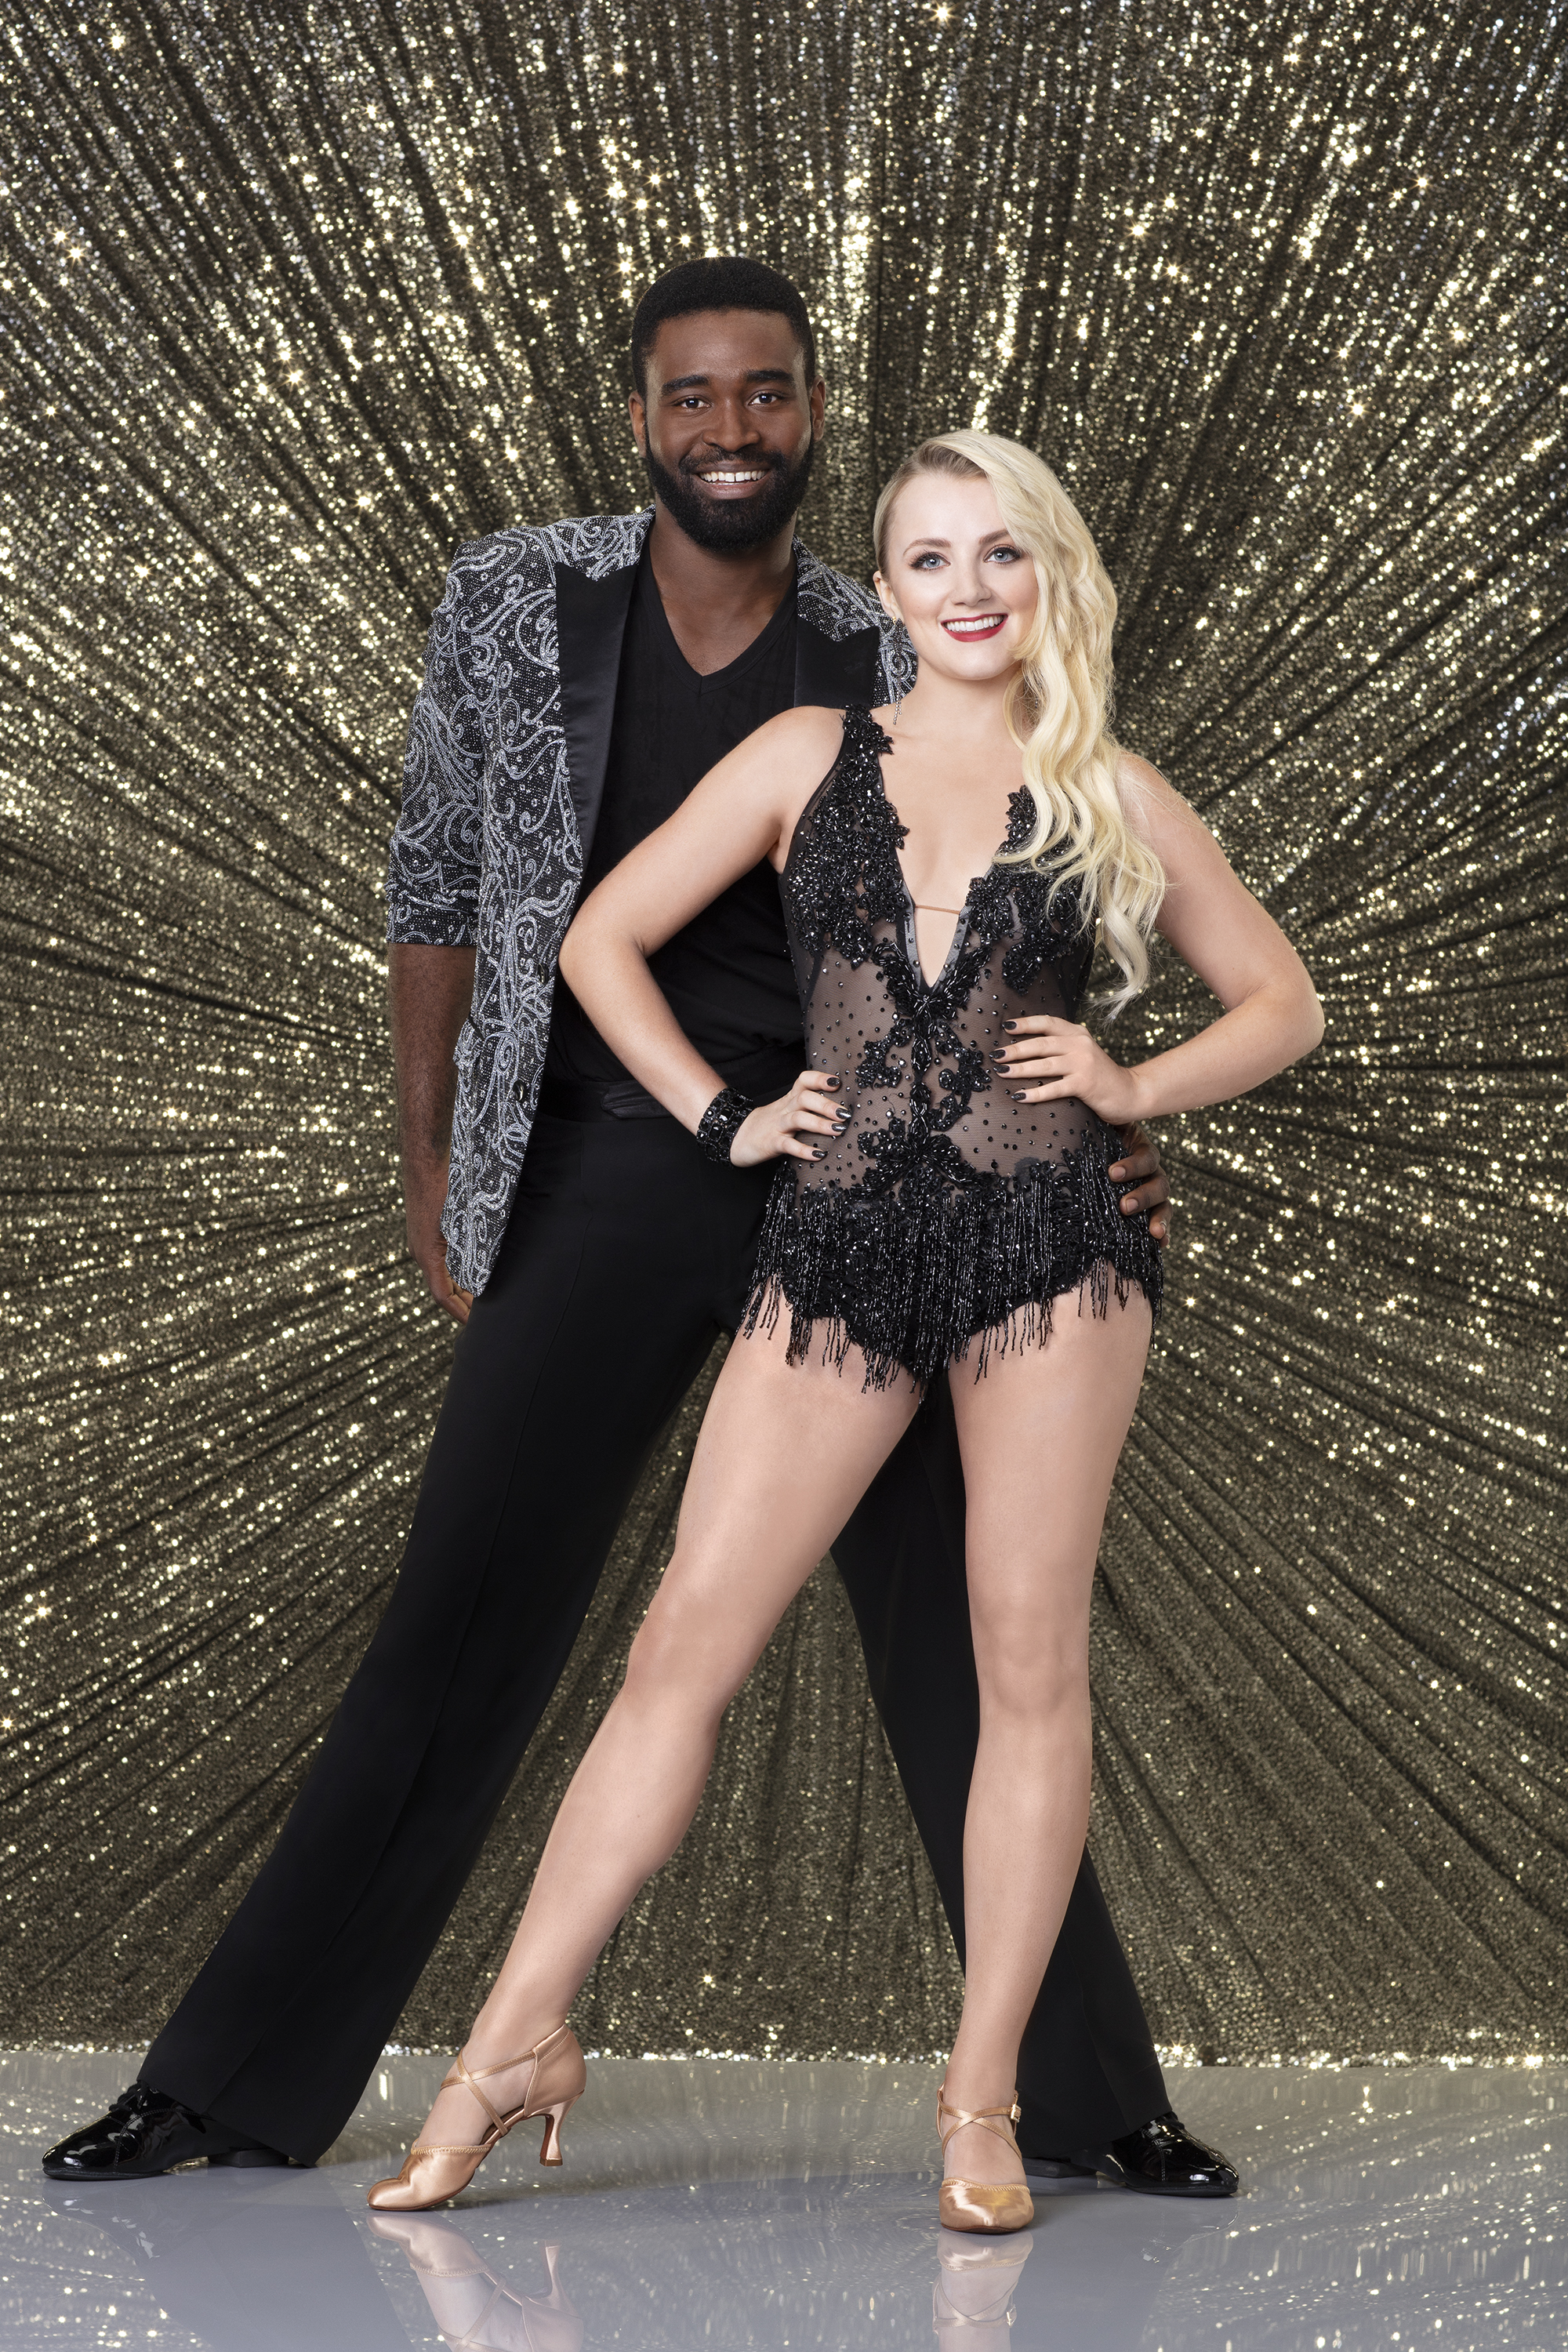 dancing with the stars season 27 cast revealed | dancing with the stars